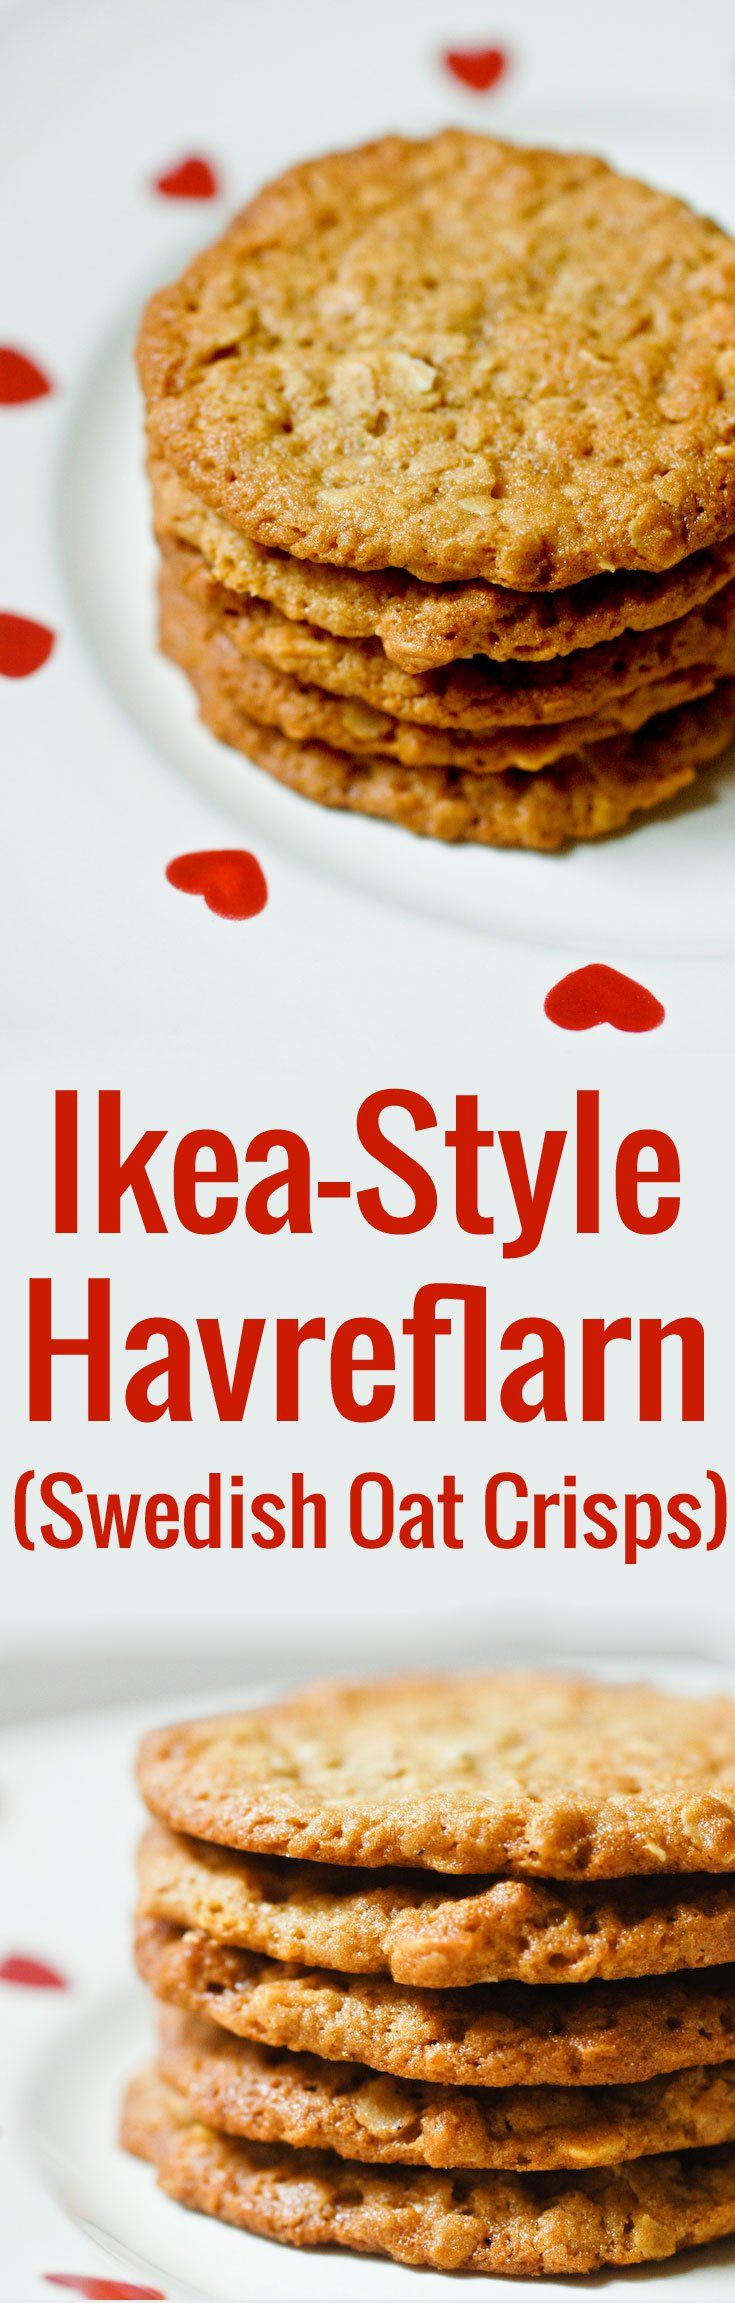 A super easy, dump-and-stir recipe for havreflarn, the delicious Swedish oat crisps you get at IKEA. Leave them plain or sandwich them with dark chocolate!